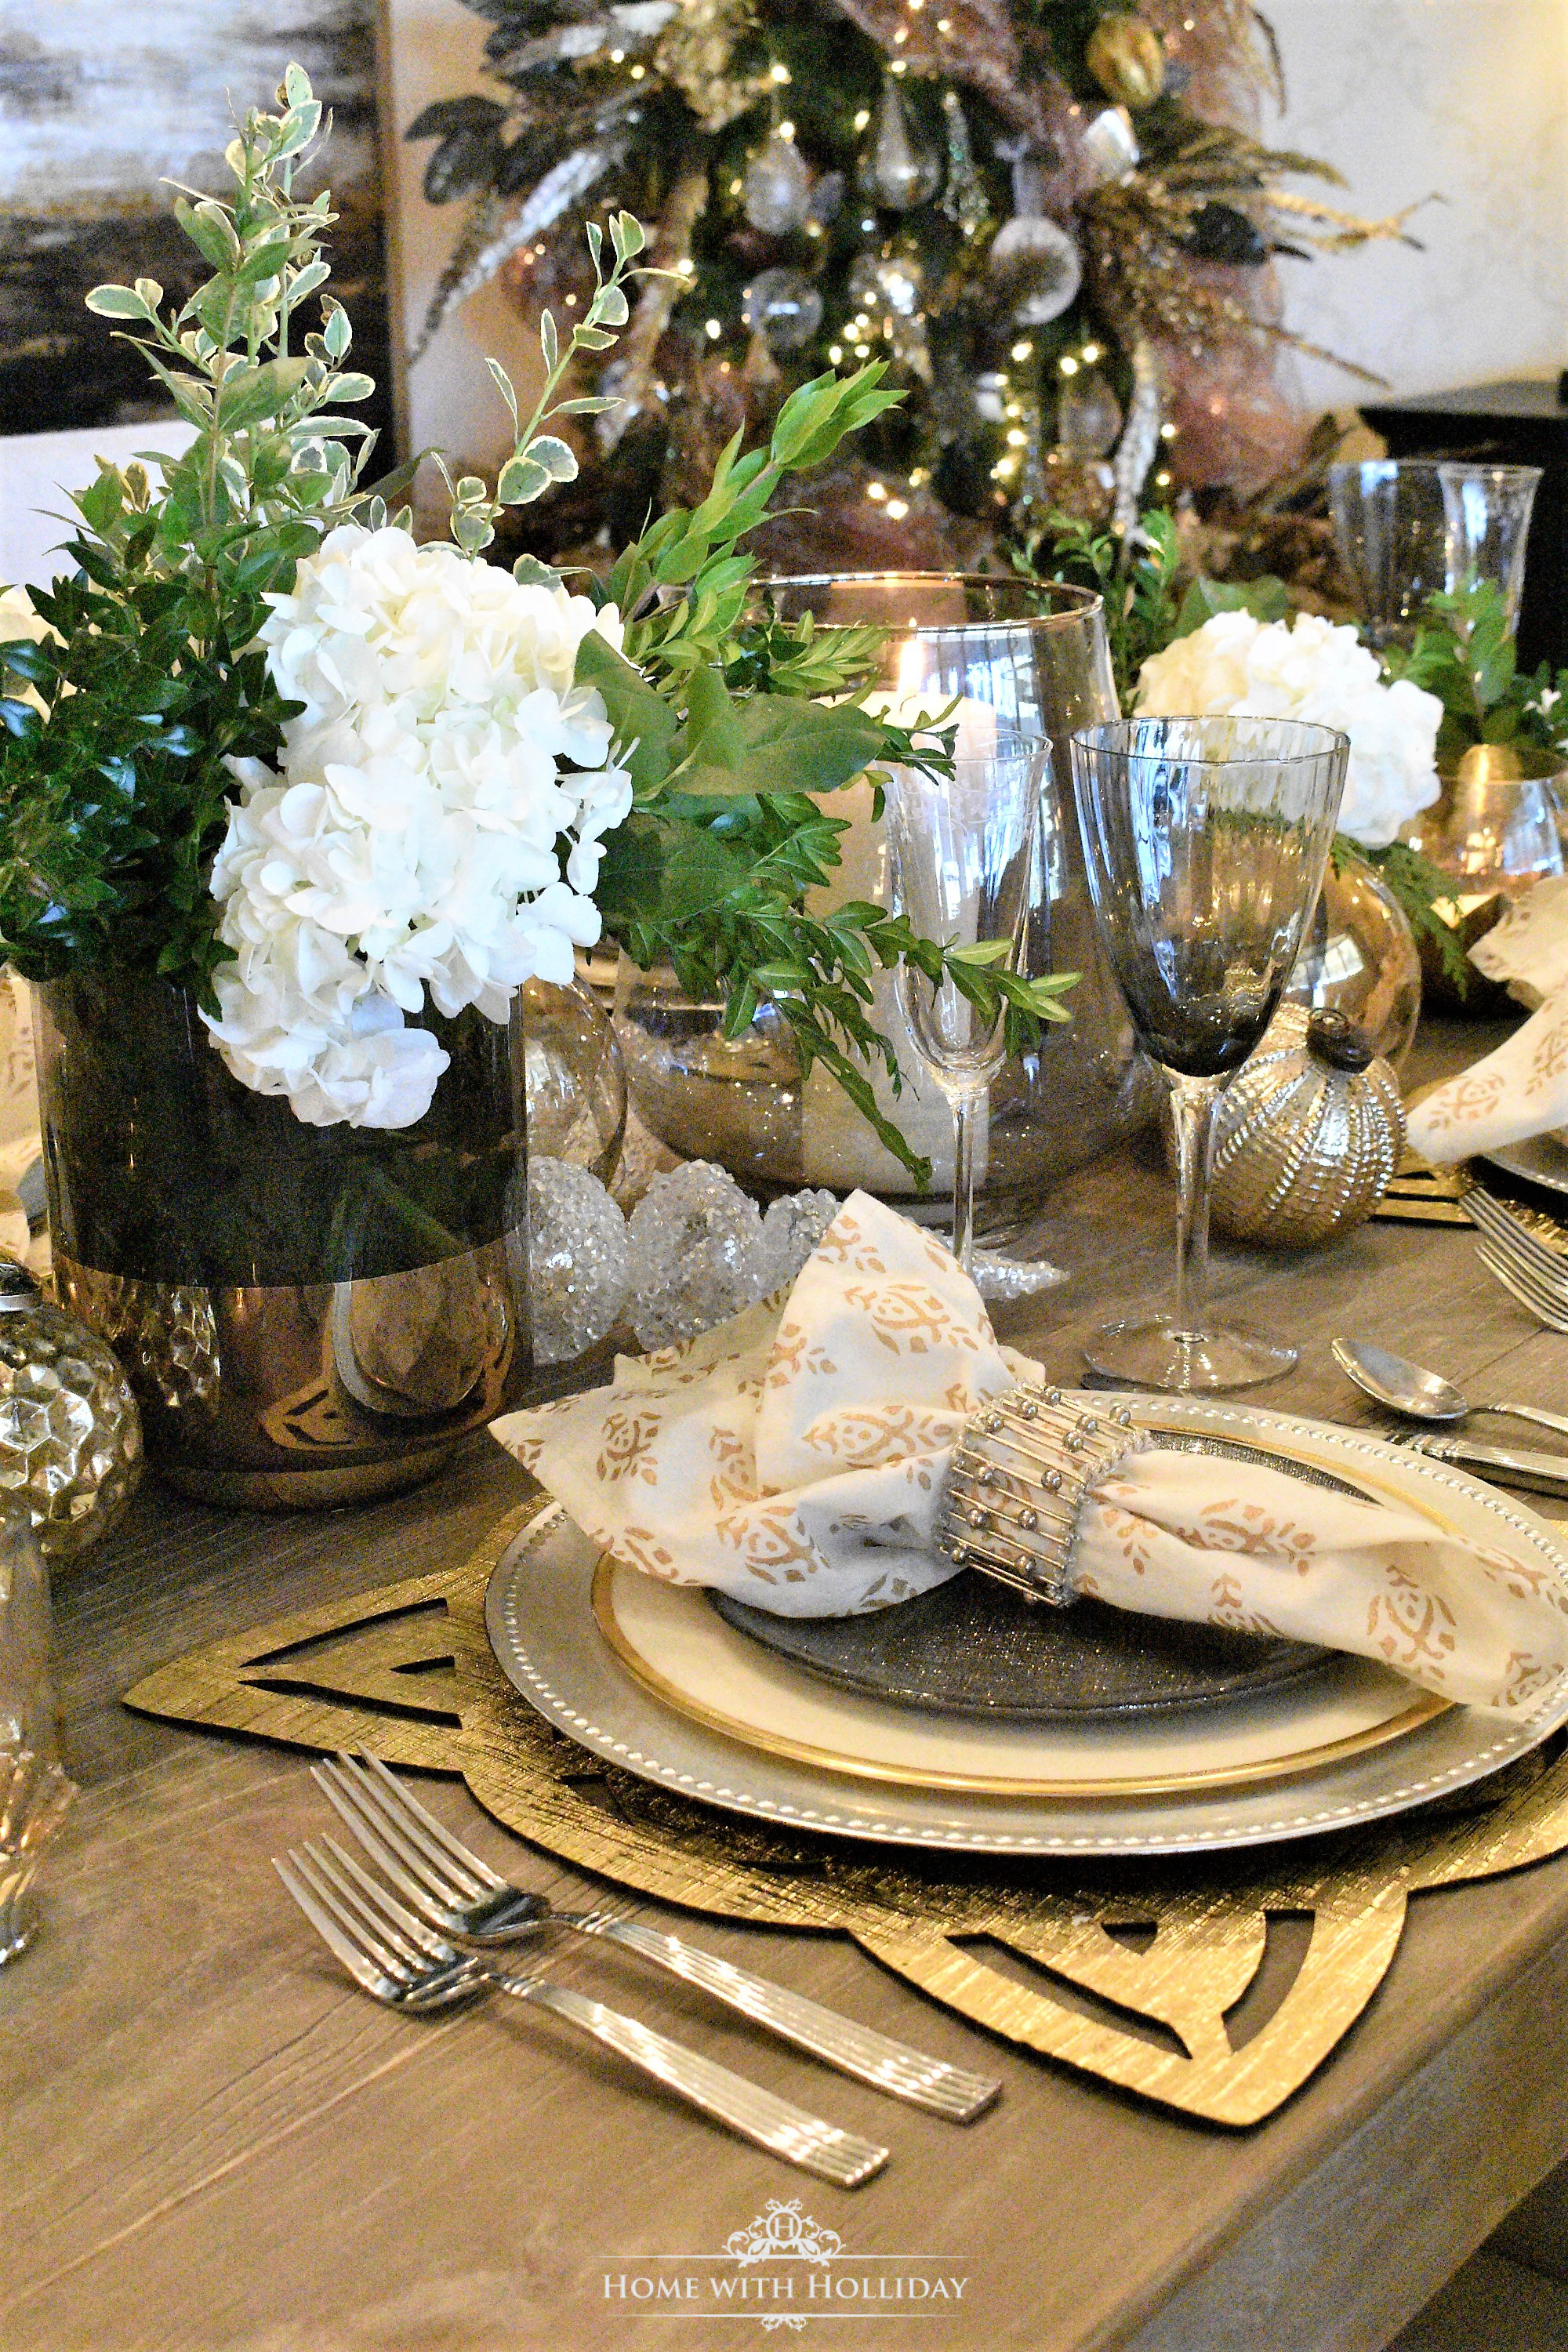 Flowers for Gold and Silver Table Setting Centerpiece - Home with Holliday